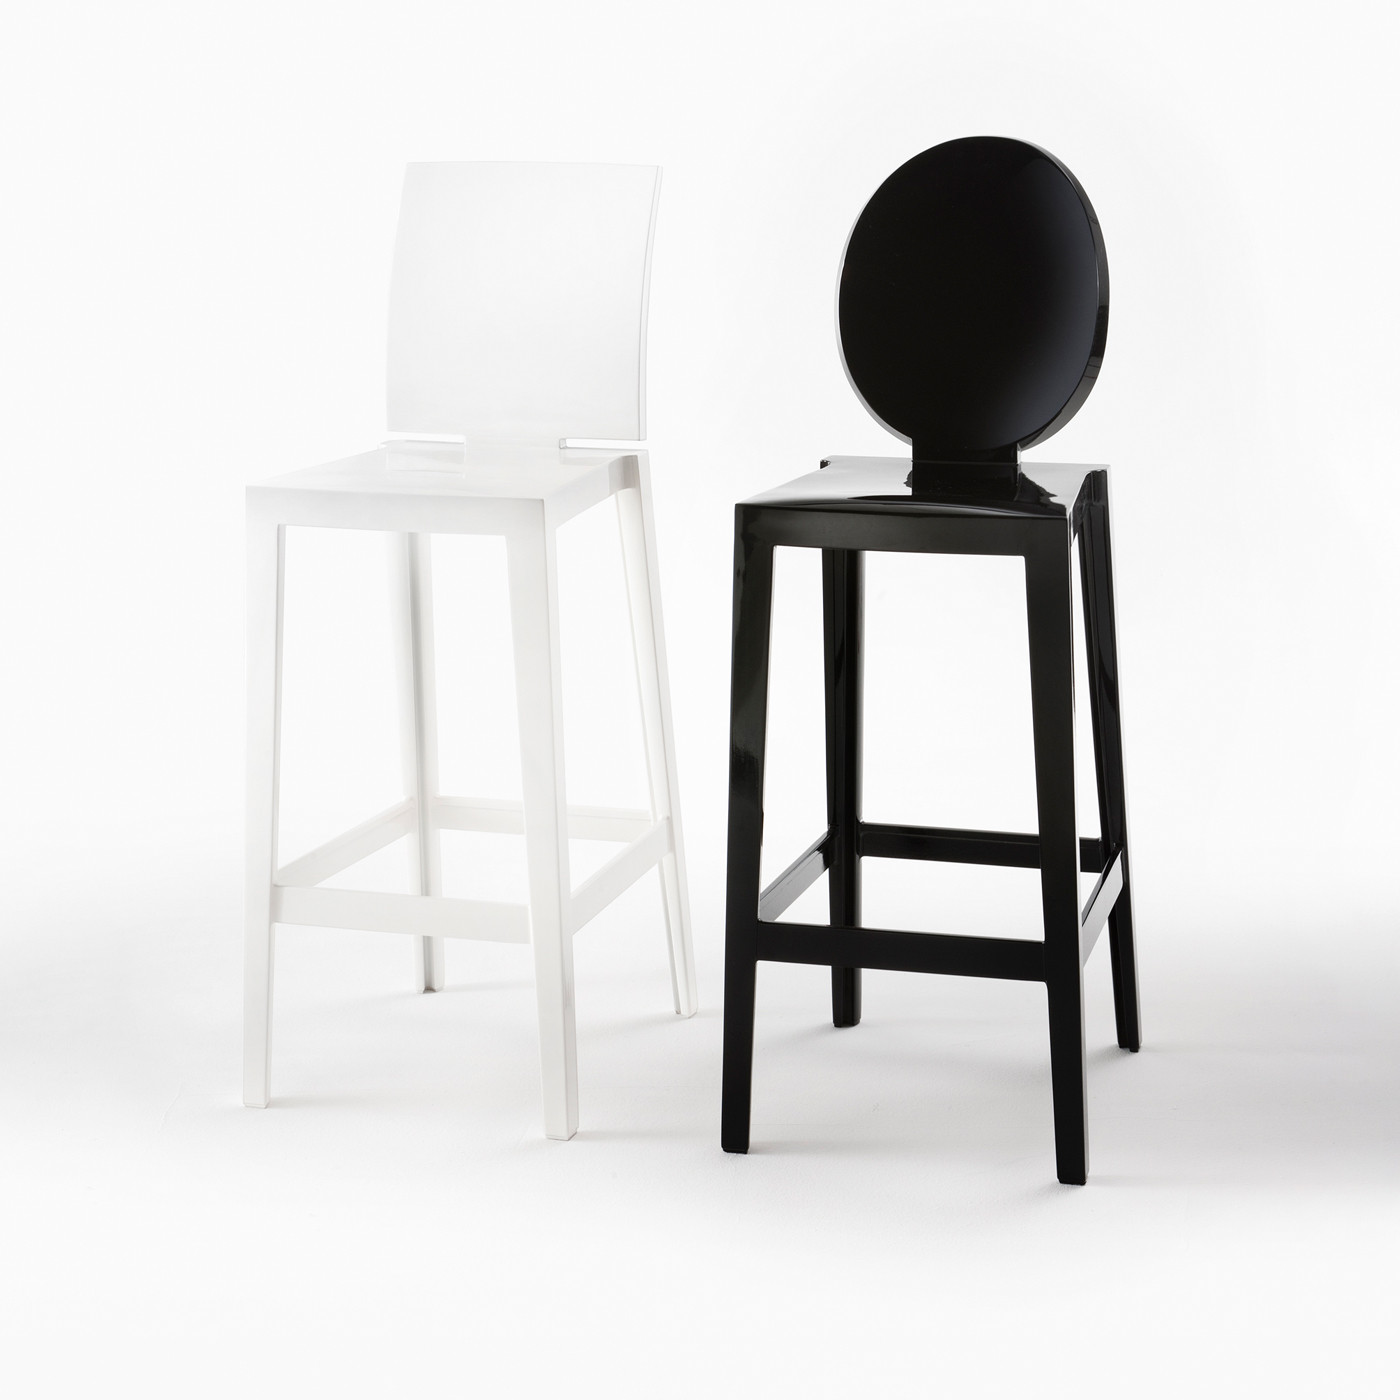 MoreOne tabouret cm d'assise de bar65 One Please Kartell hauteur Ghost More XZTPkuiOw